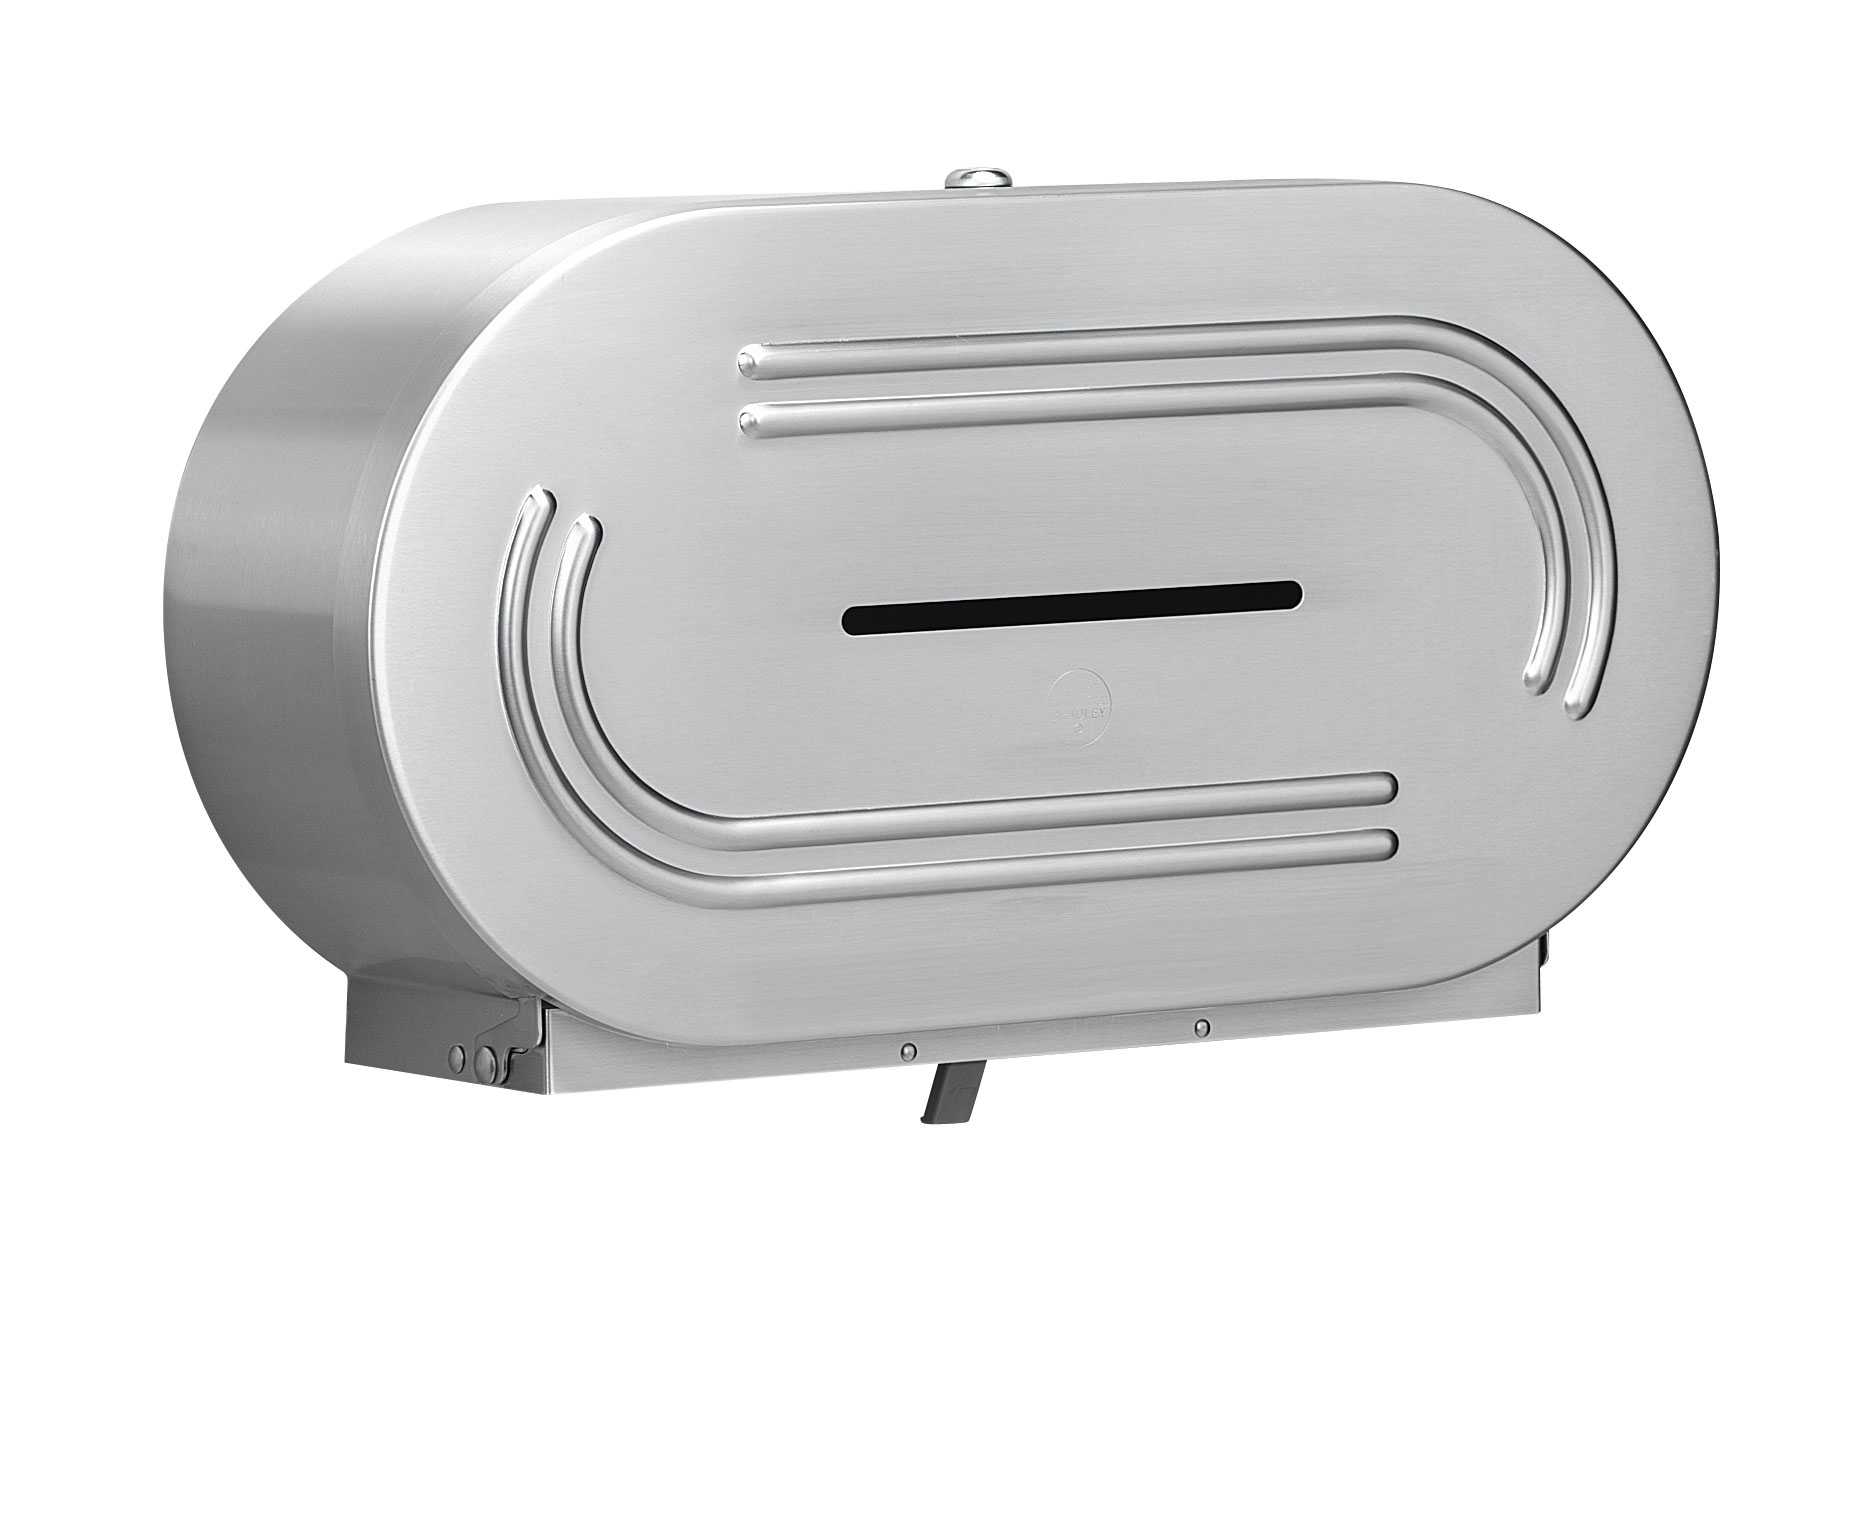 Jumbo Dual Roll Toilet Tissue Dispenser - Bradley Corporation